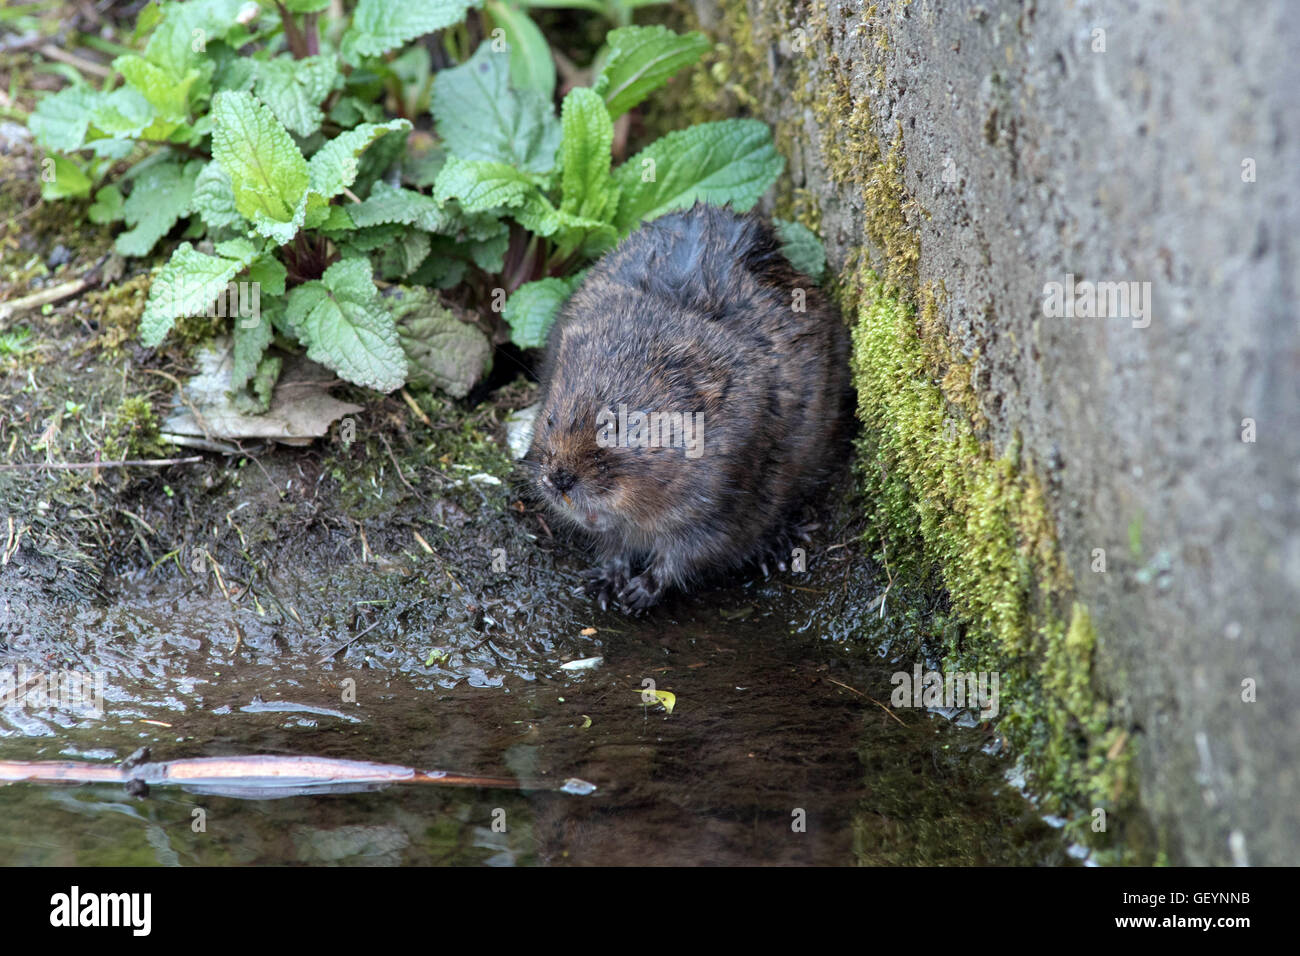 Water Vole by the riverbank - Stock Image